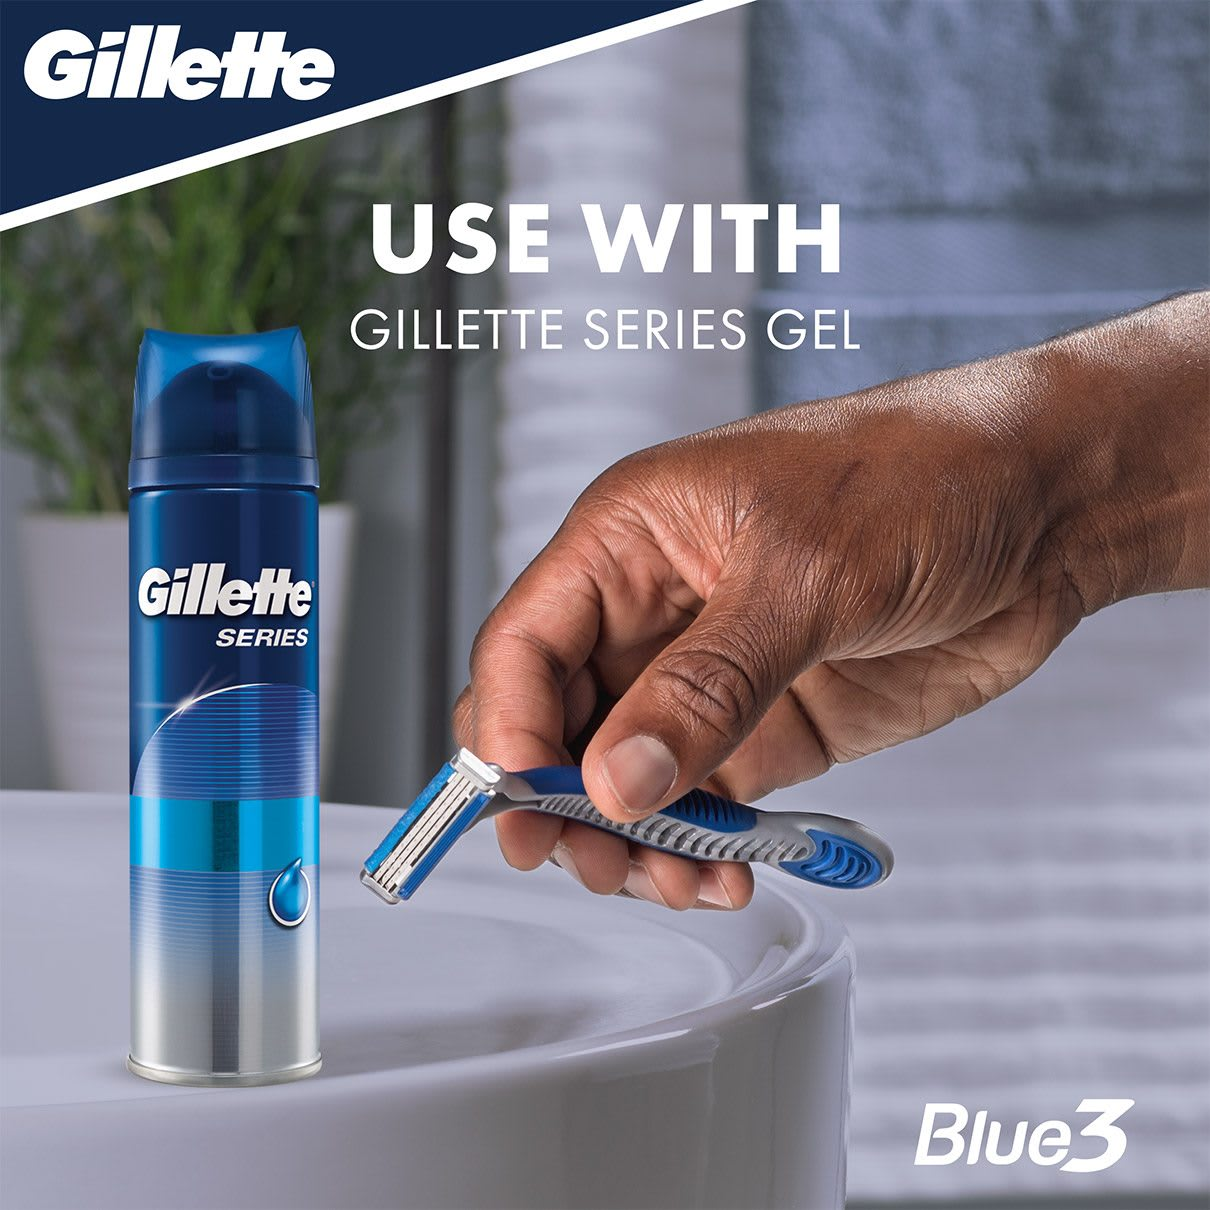 Use With Gillette Series foam